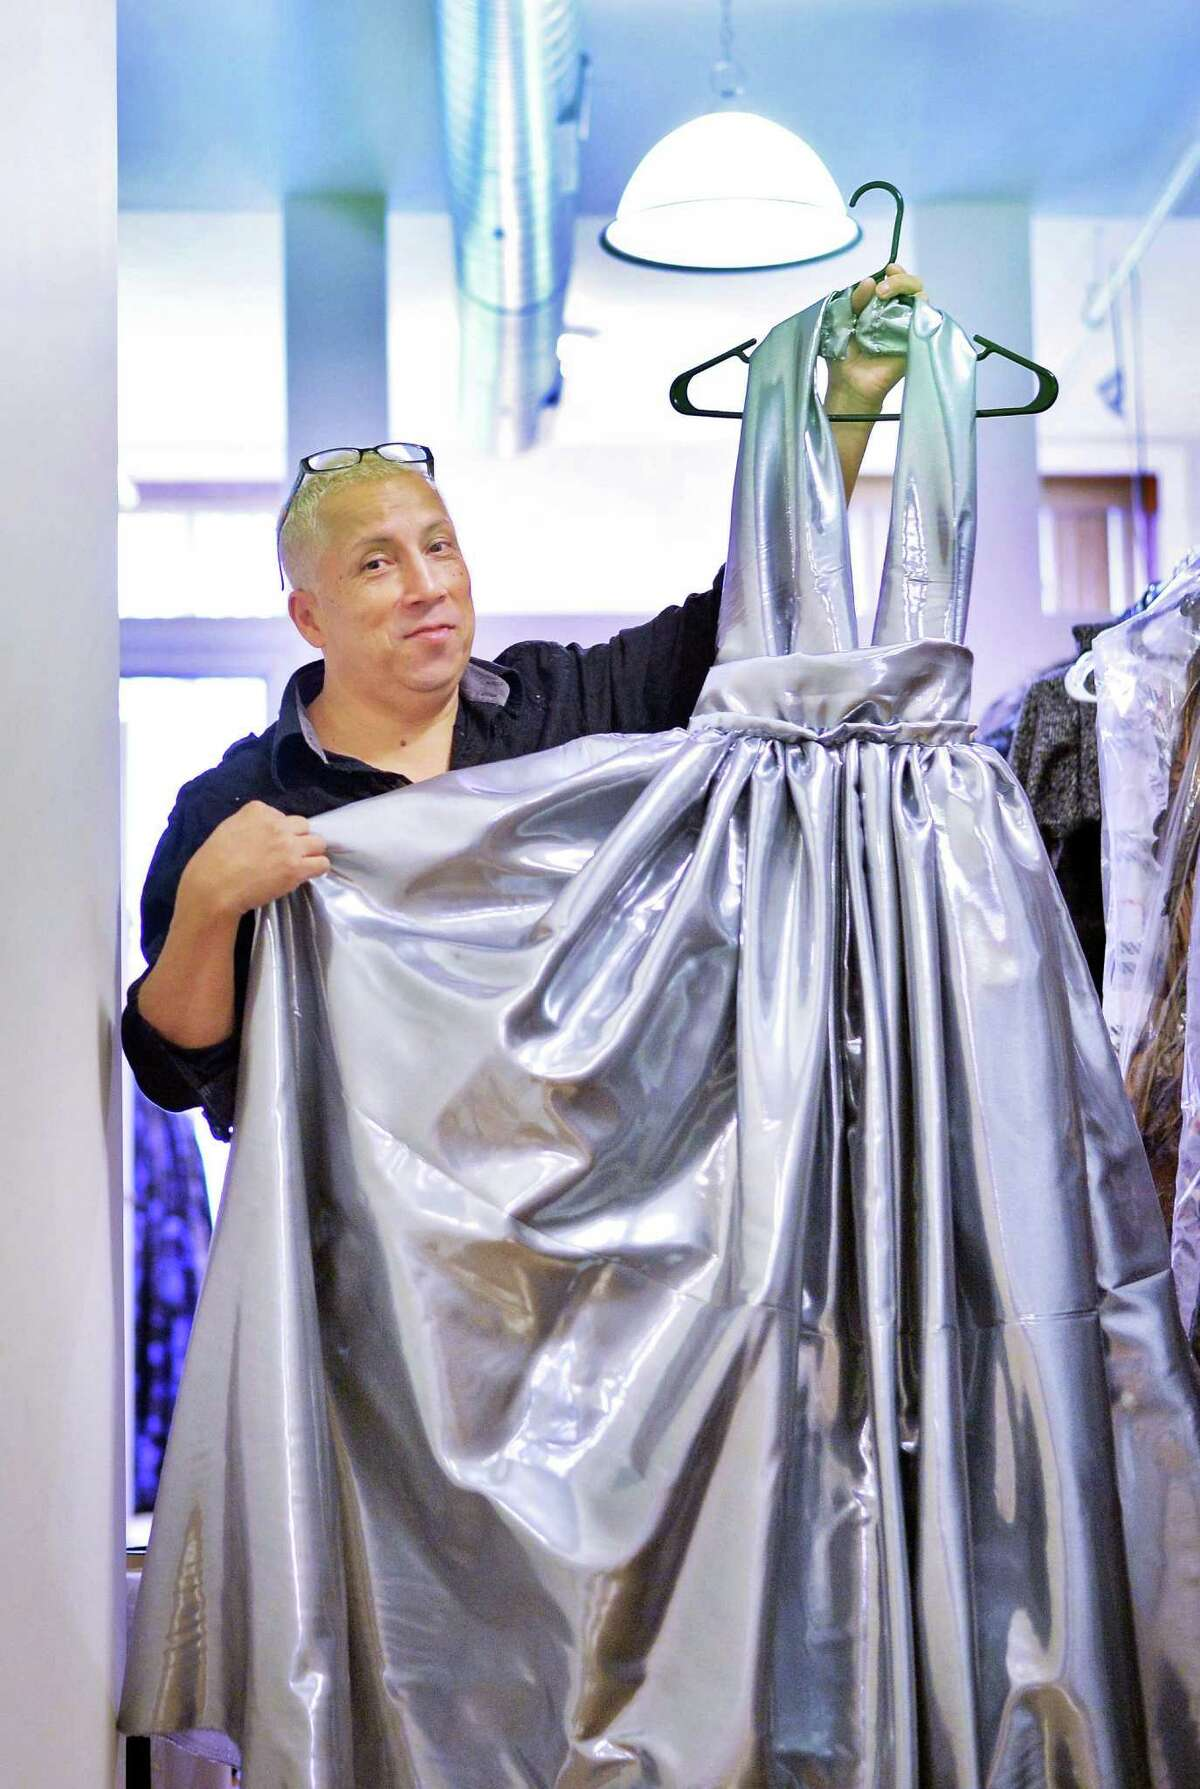 Daniel Mozzes with a silver evening dress at his N. Pearl Street studio Tuesday Oct. 6, 2015 in Albany, NY. (John Carl D'Annibale / Times Union)